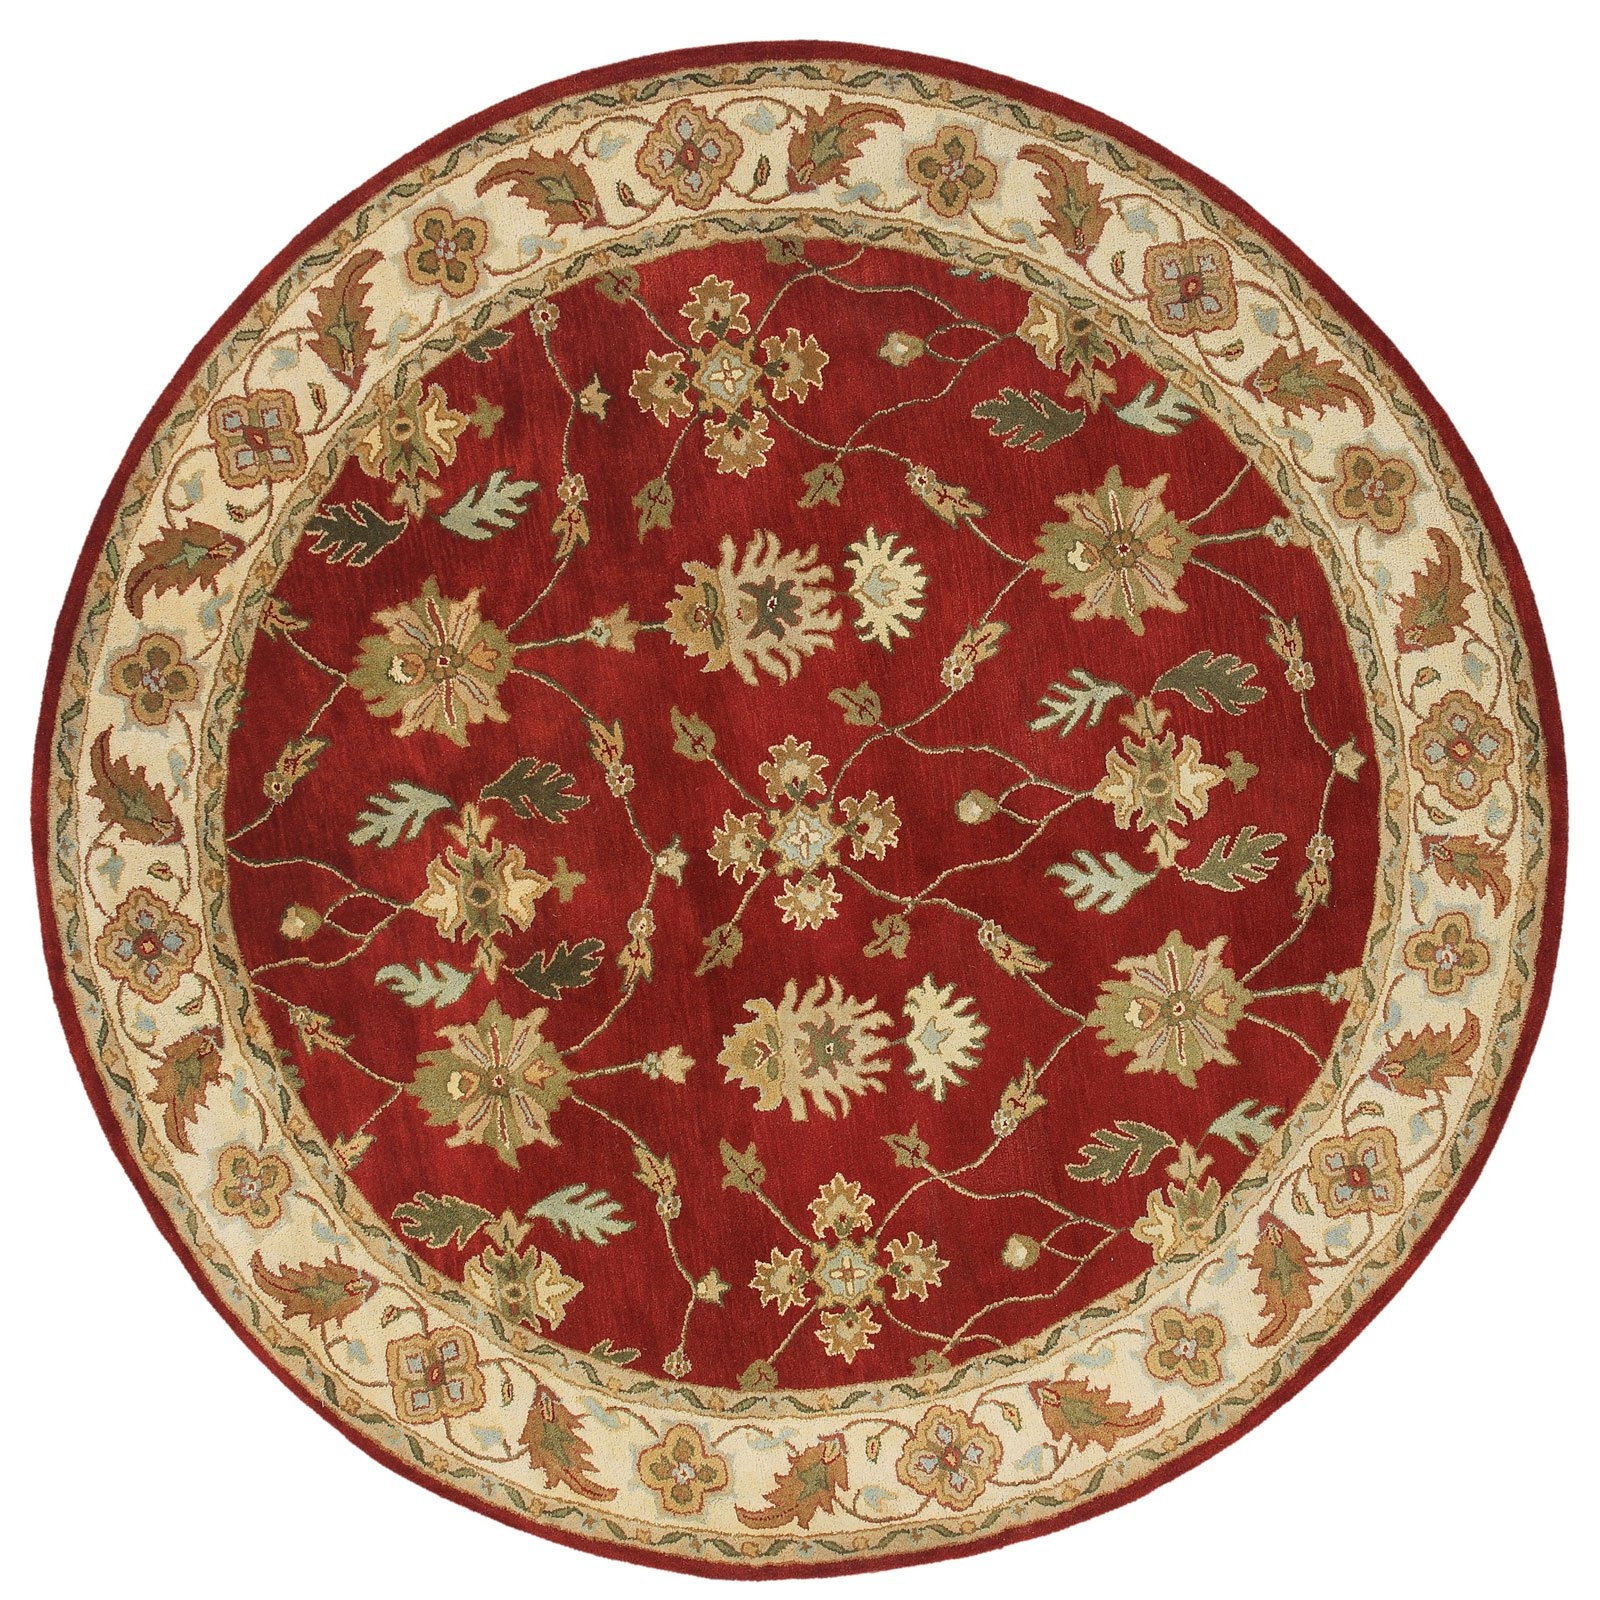 58 Round Carpets Chasen Round Rug Medsmatter With Circular Carpets (Image 3 of 15)